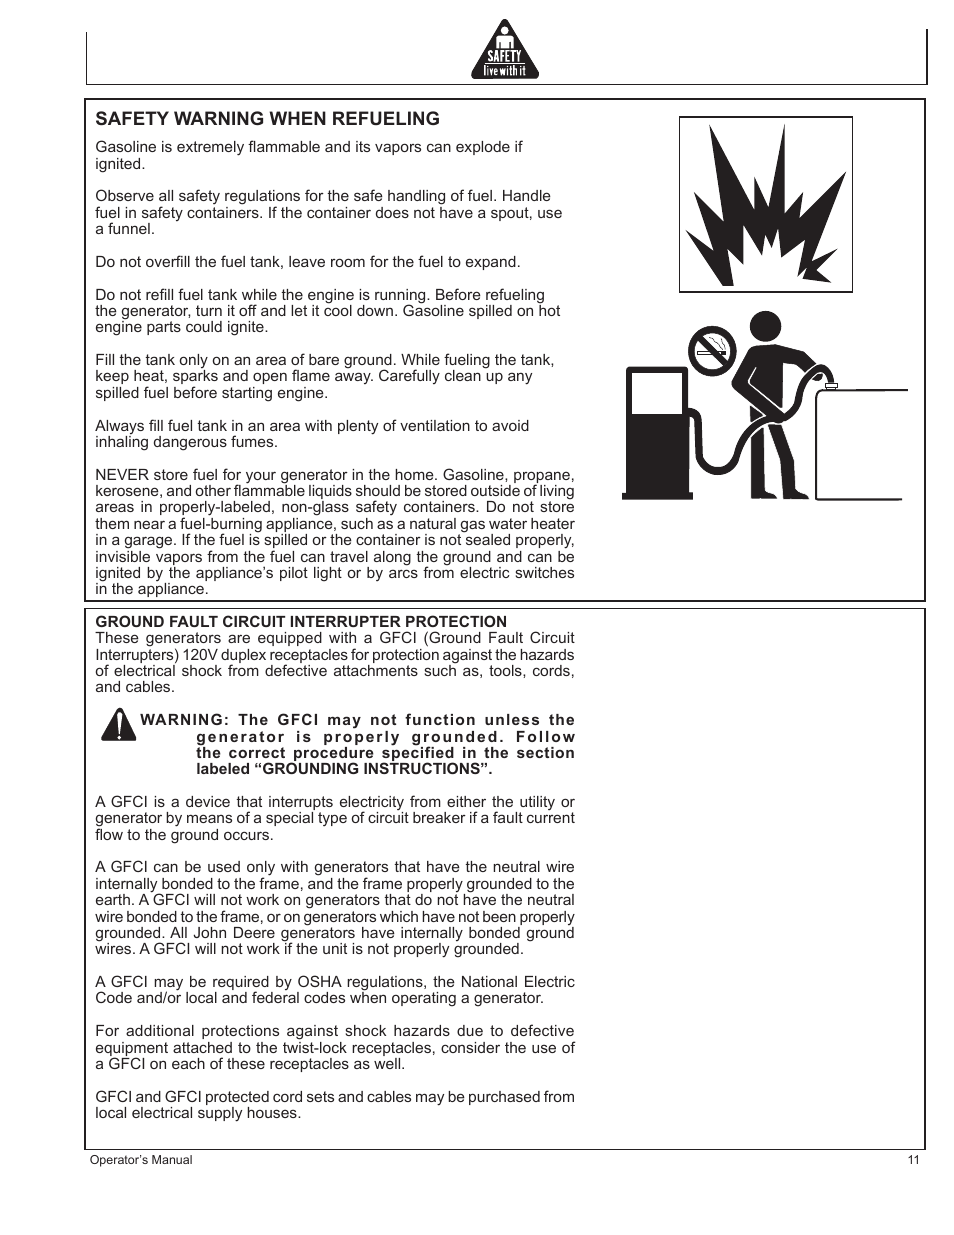 John Deere Hr G1100 User Manual Page 11 124 Groundfault Circuit Interrupter Protects From Electric Shock Gfci